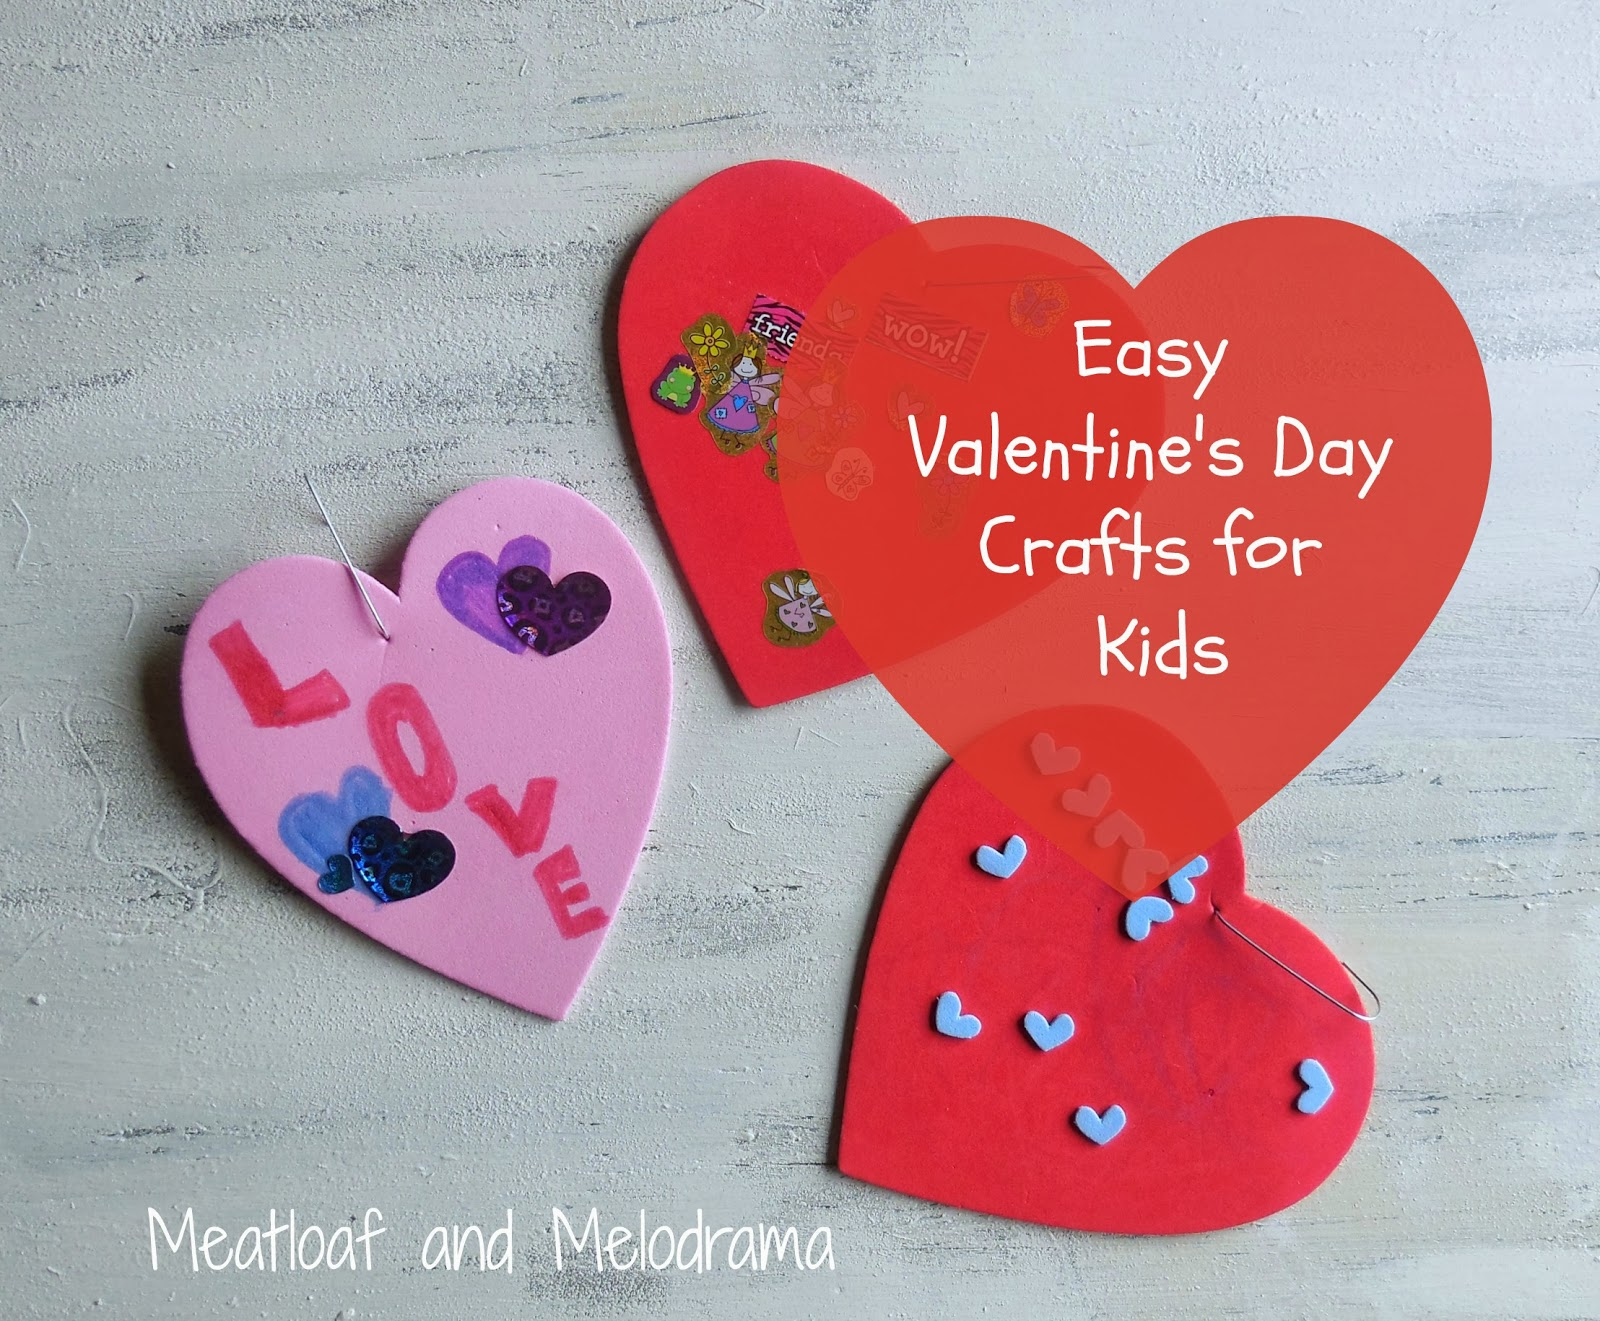 Easy valentine 39 s day crafts for kids meatloaf and melodrama for Valentine day crafts for kids